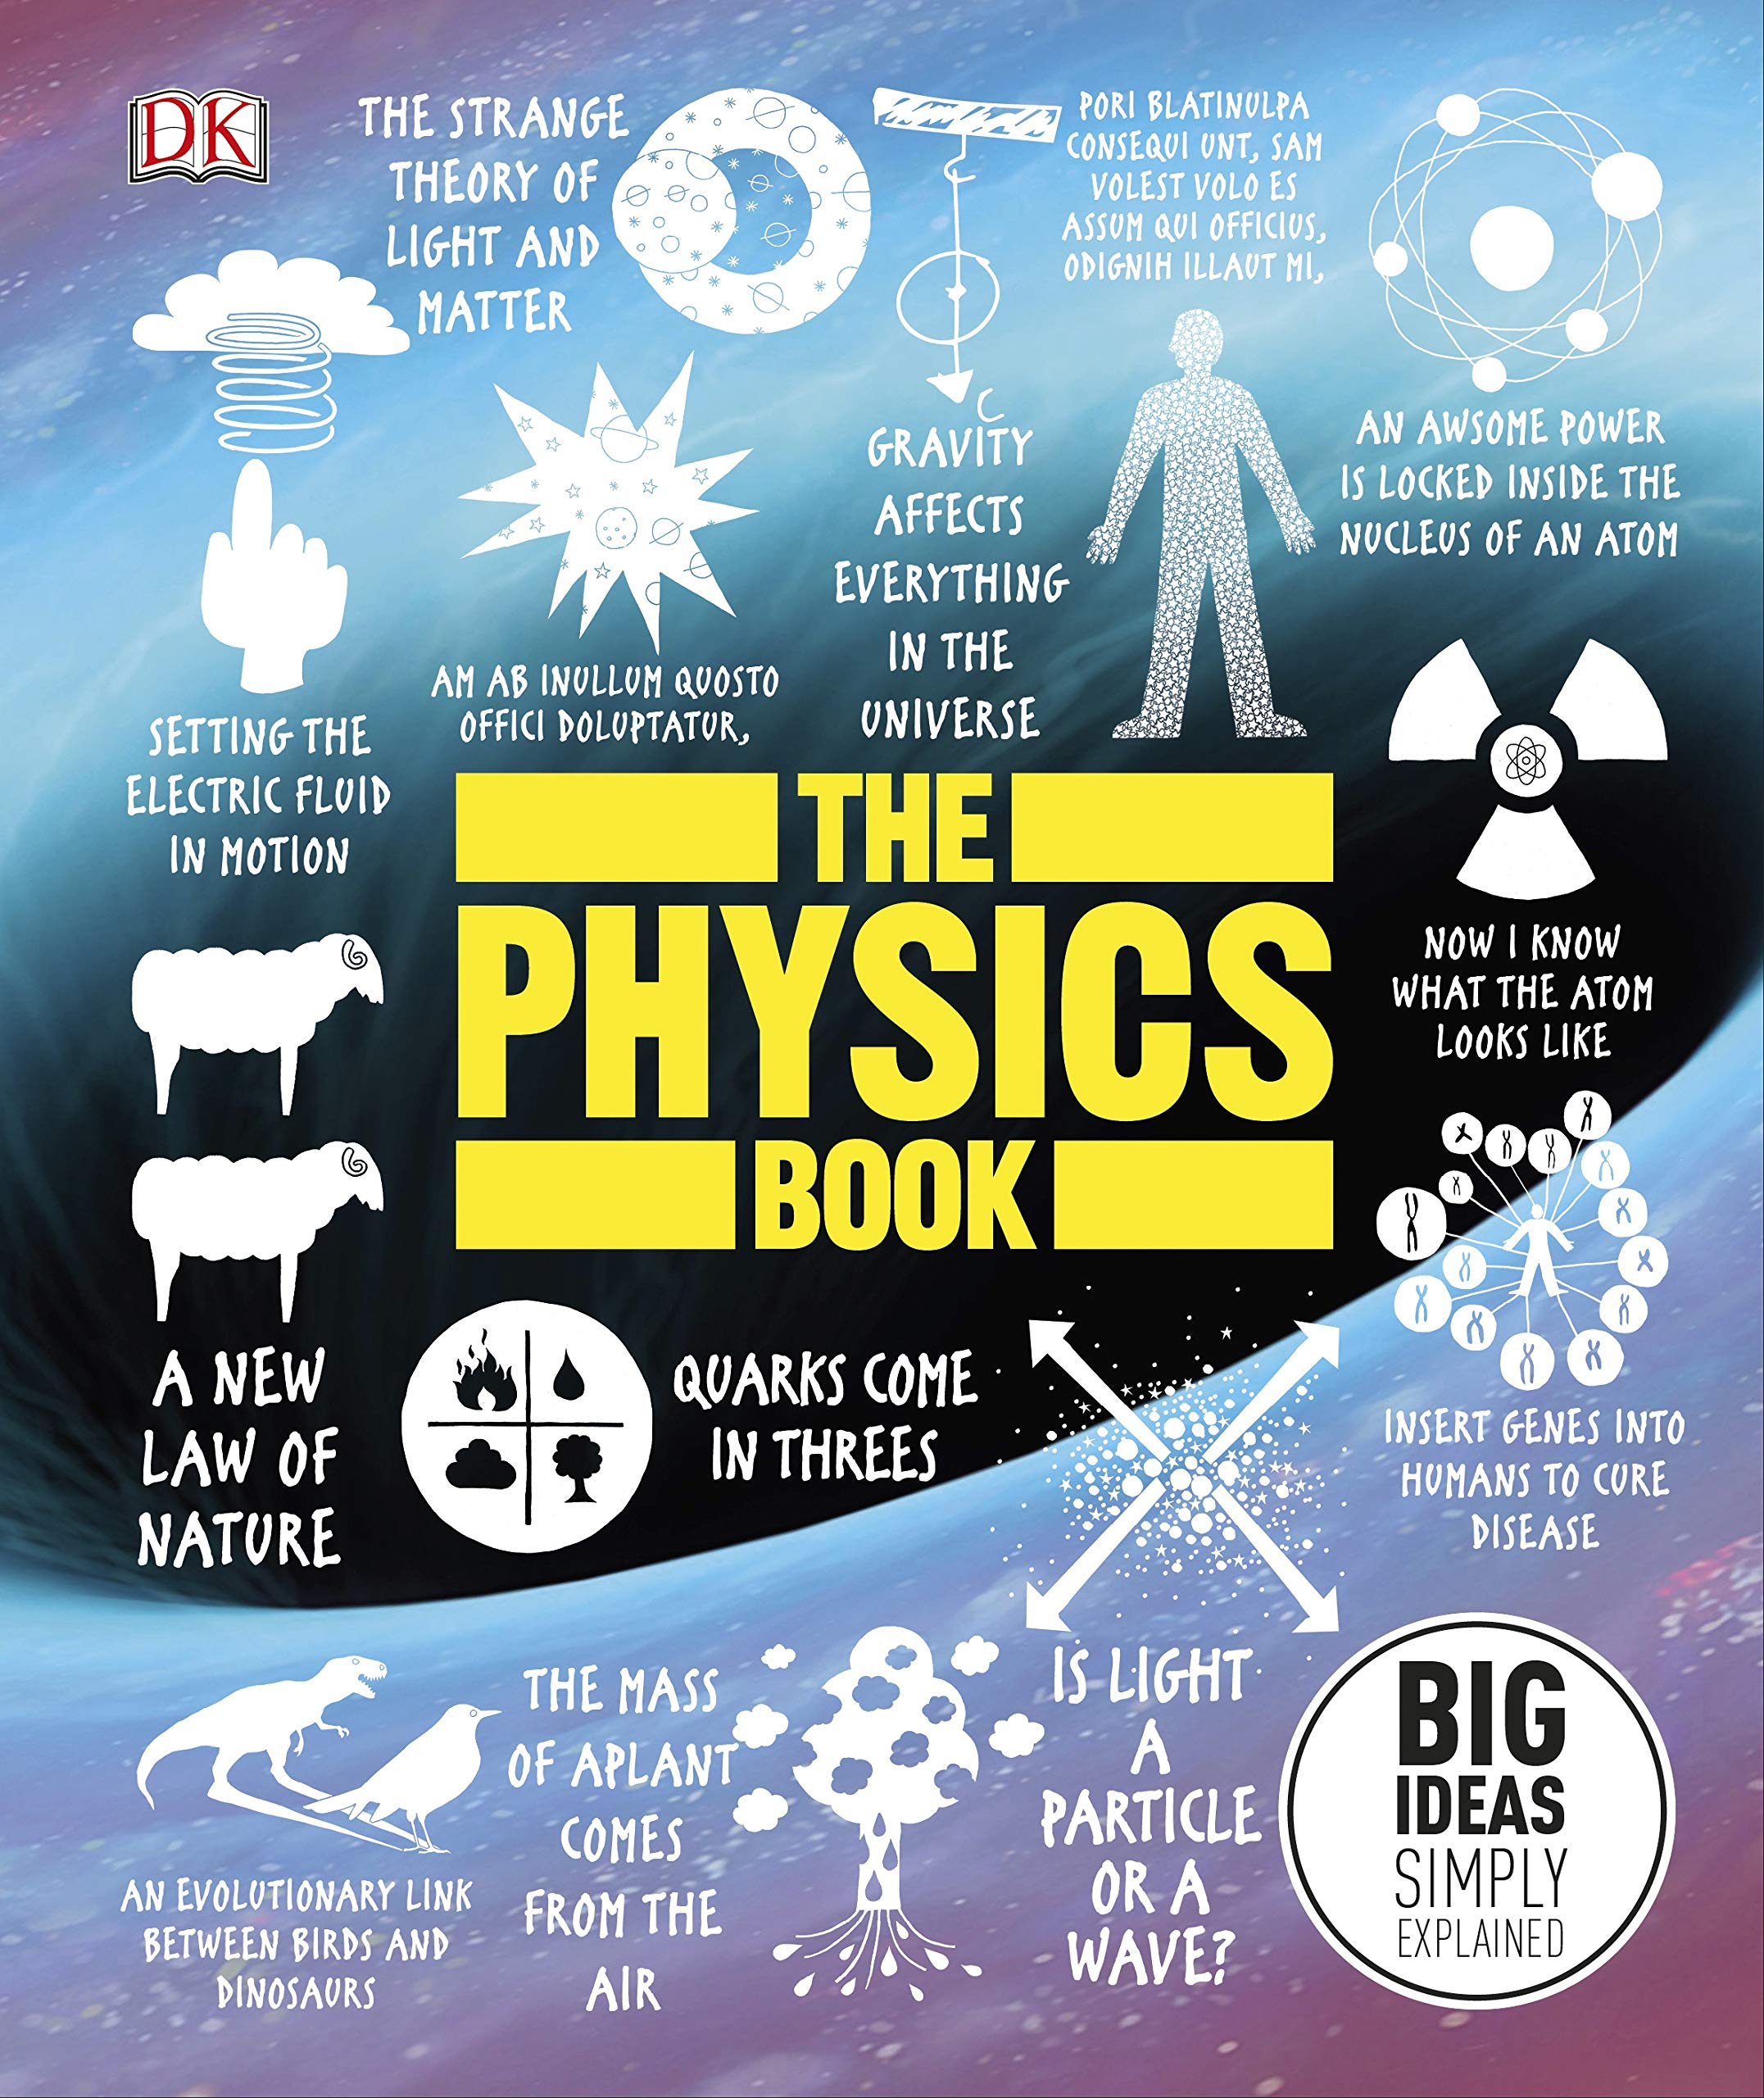 The Physics Book, Big Ideas Simply Explained by DK (z-lib.org)